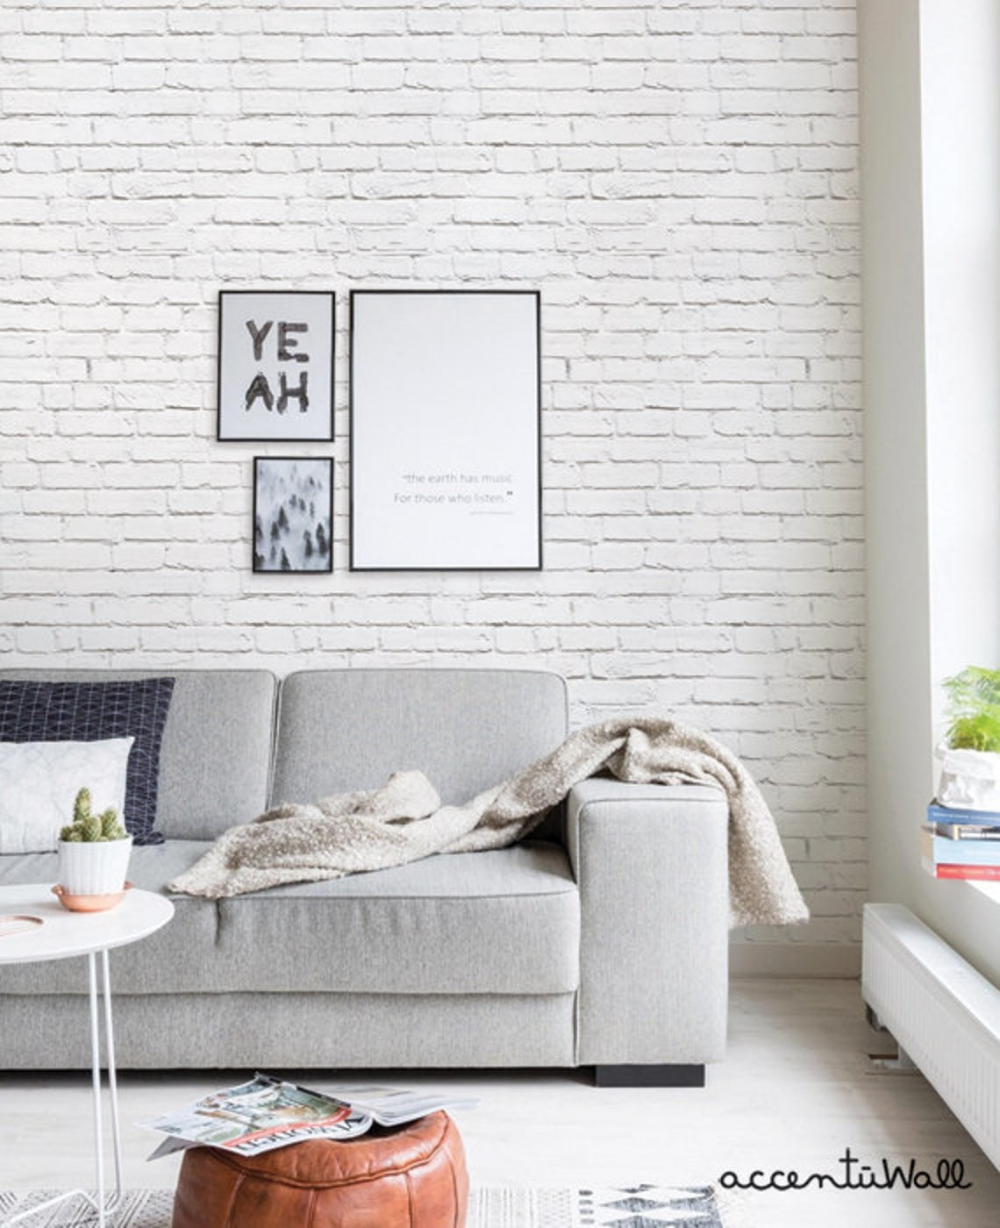 Removable Wallpaper White Brick Modern Clean Look Self Etsy In 2020 Brick Wallpaper Living Room Brick Wall Living Room Wallpaper Living Room